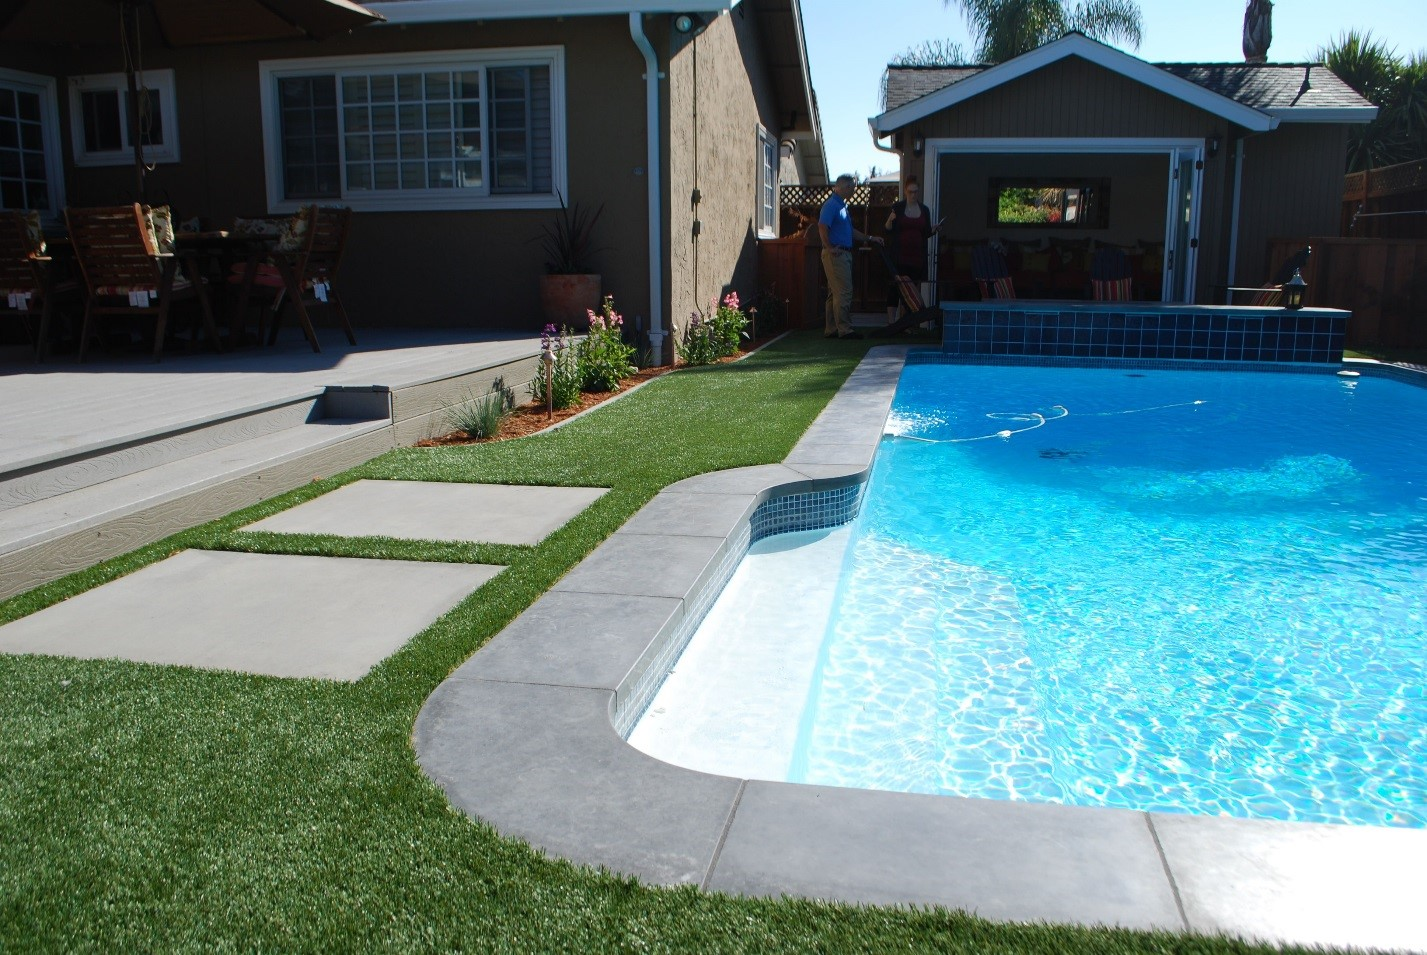 Quality Synthetic Grass Systems Can Make Outdoor Spaces